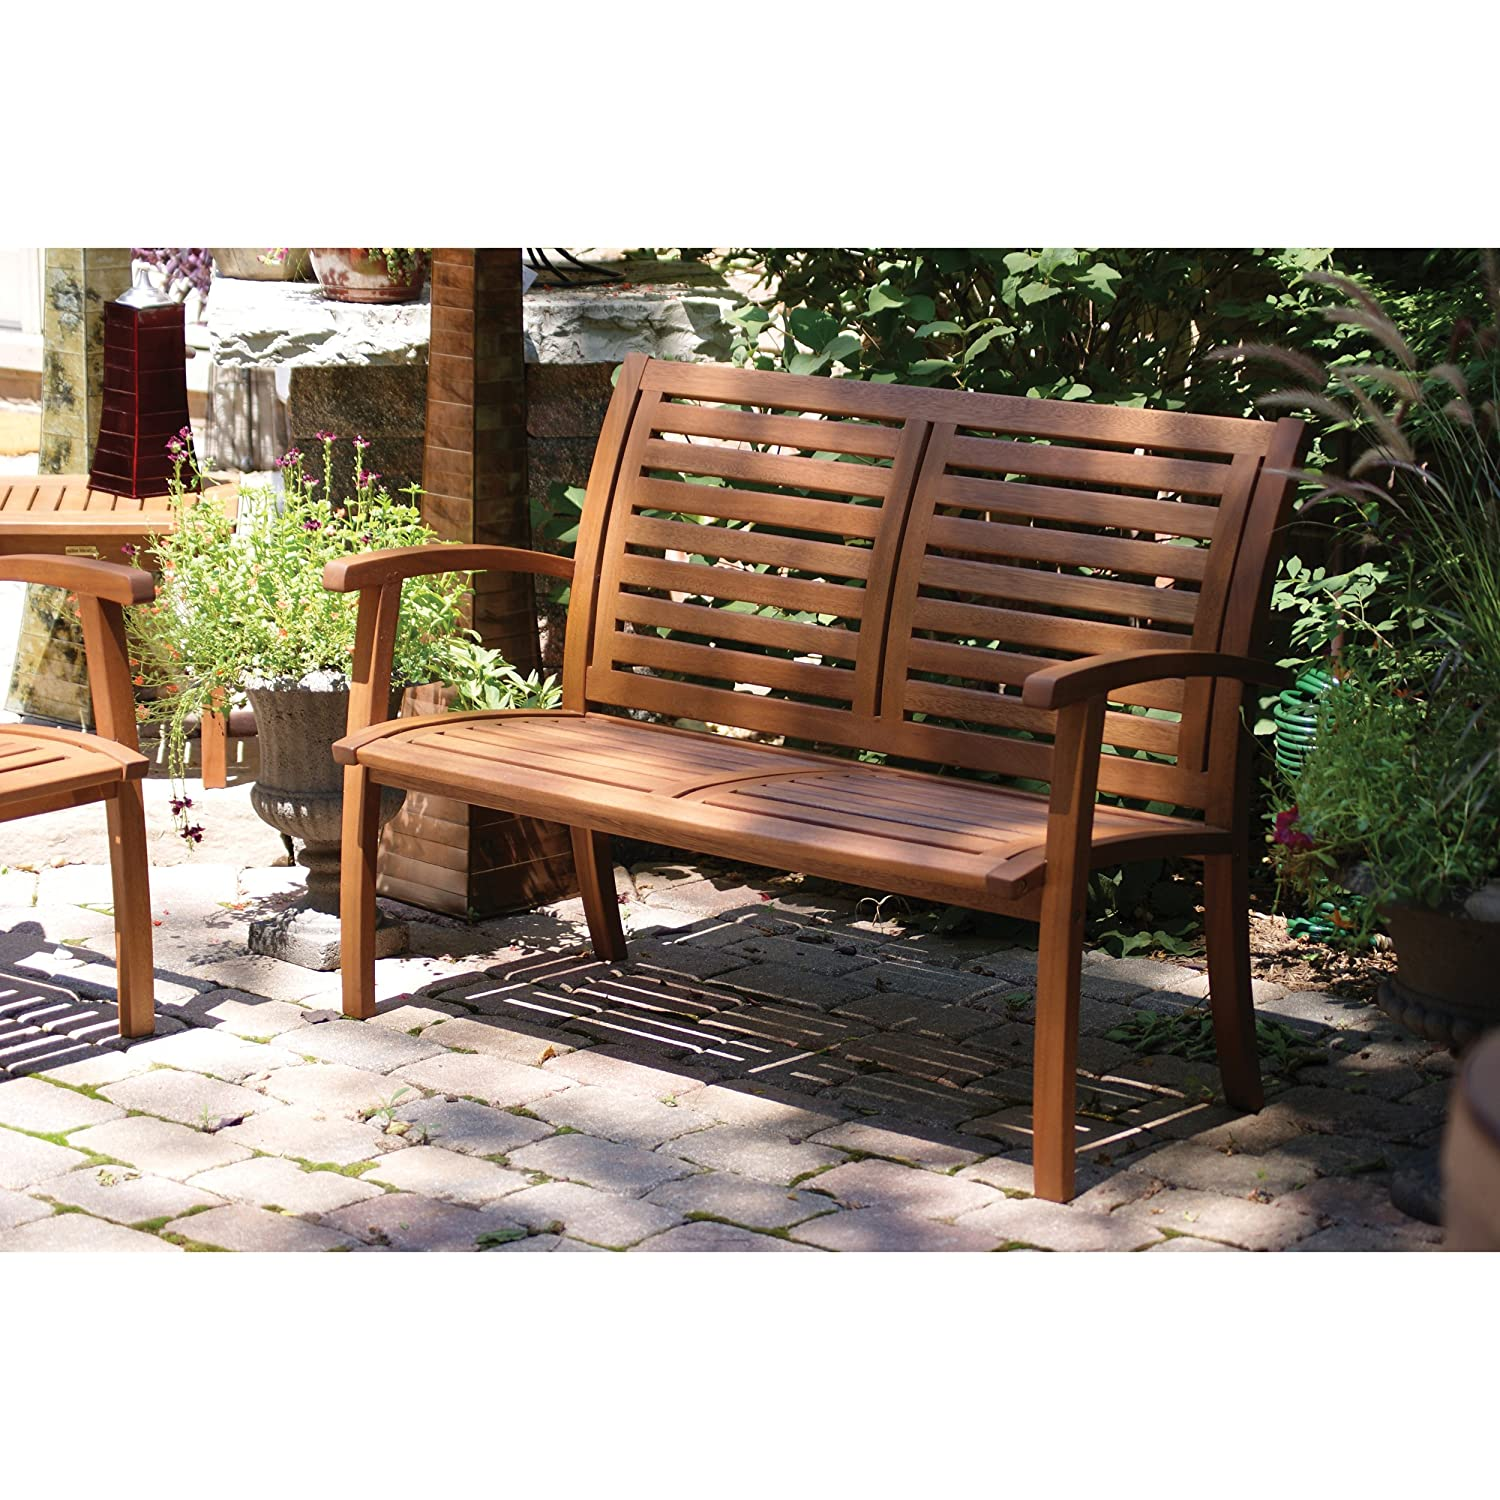 Amazon.com : Outdoor Interiors 21440 Luxe Eucalyptus Bench : Wood Bench :  Garden U0026 Outdoor